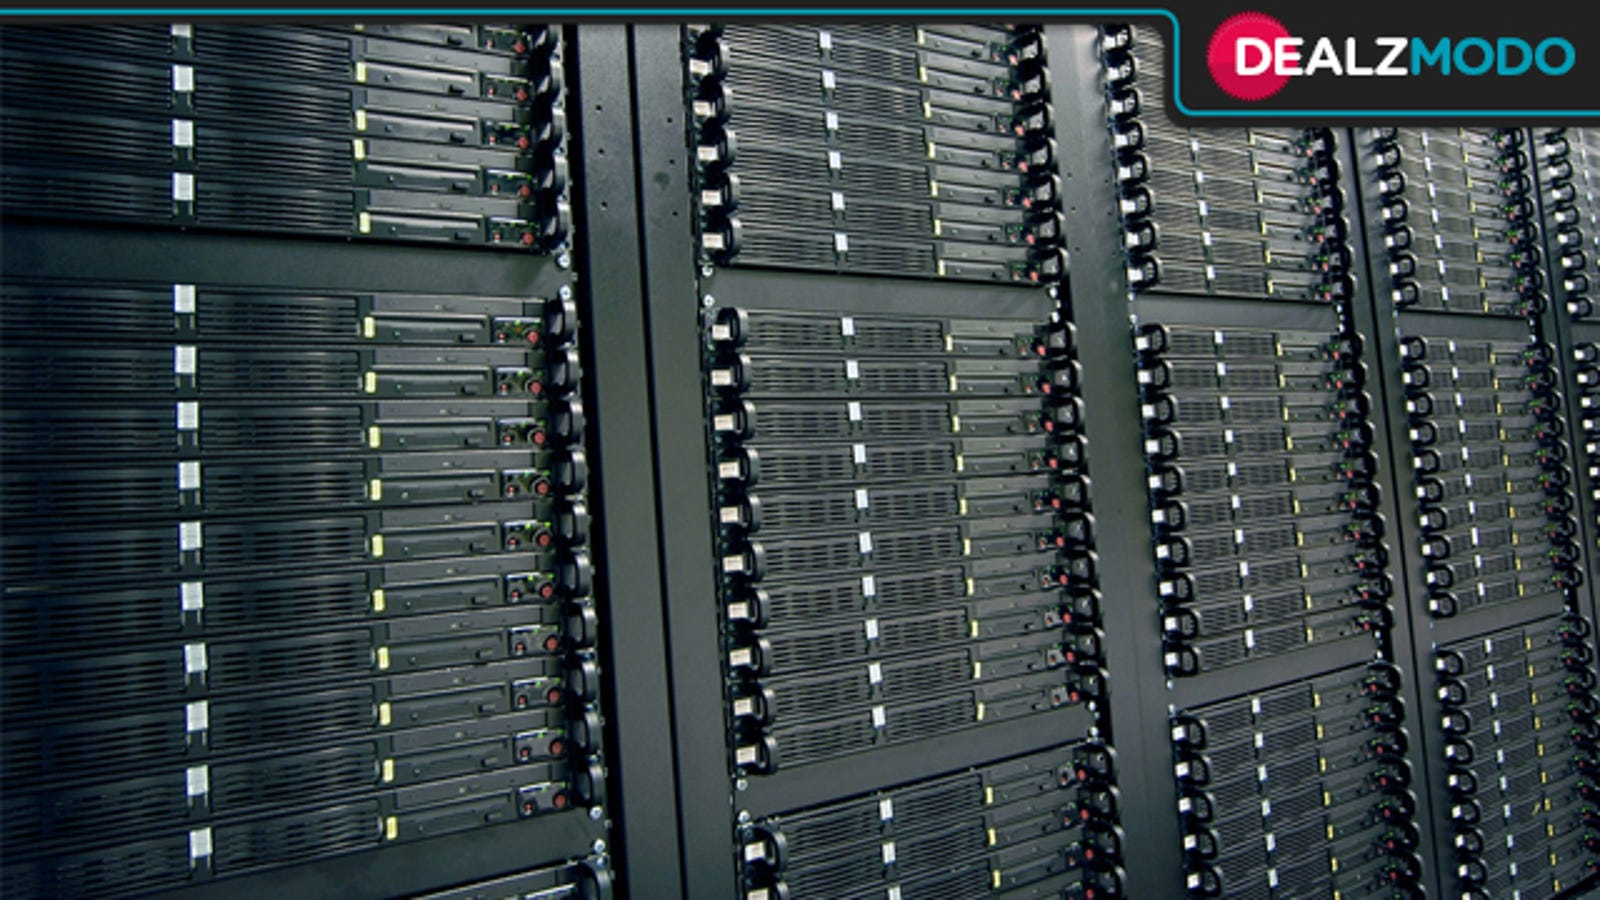 Stupid-Cheap Webhosting Is Your Dealzmodo-Exclusive Deal of the Day